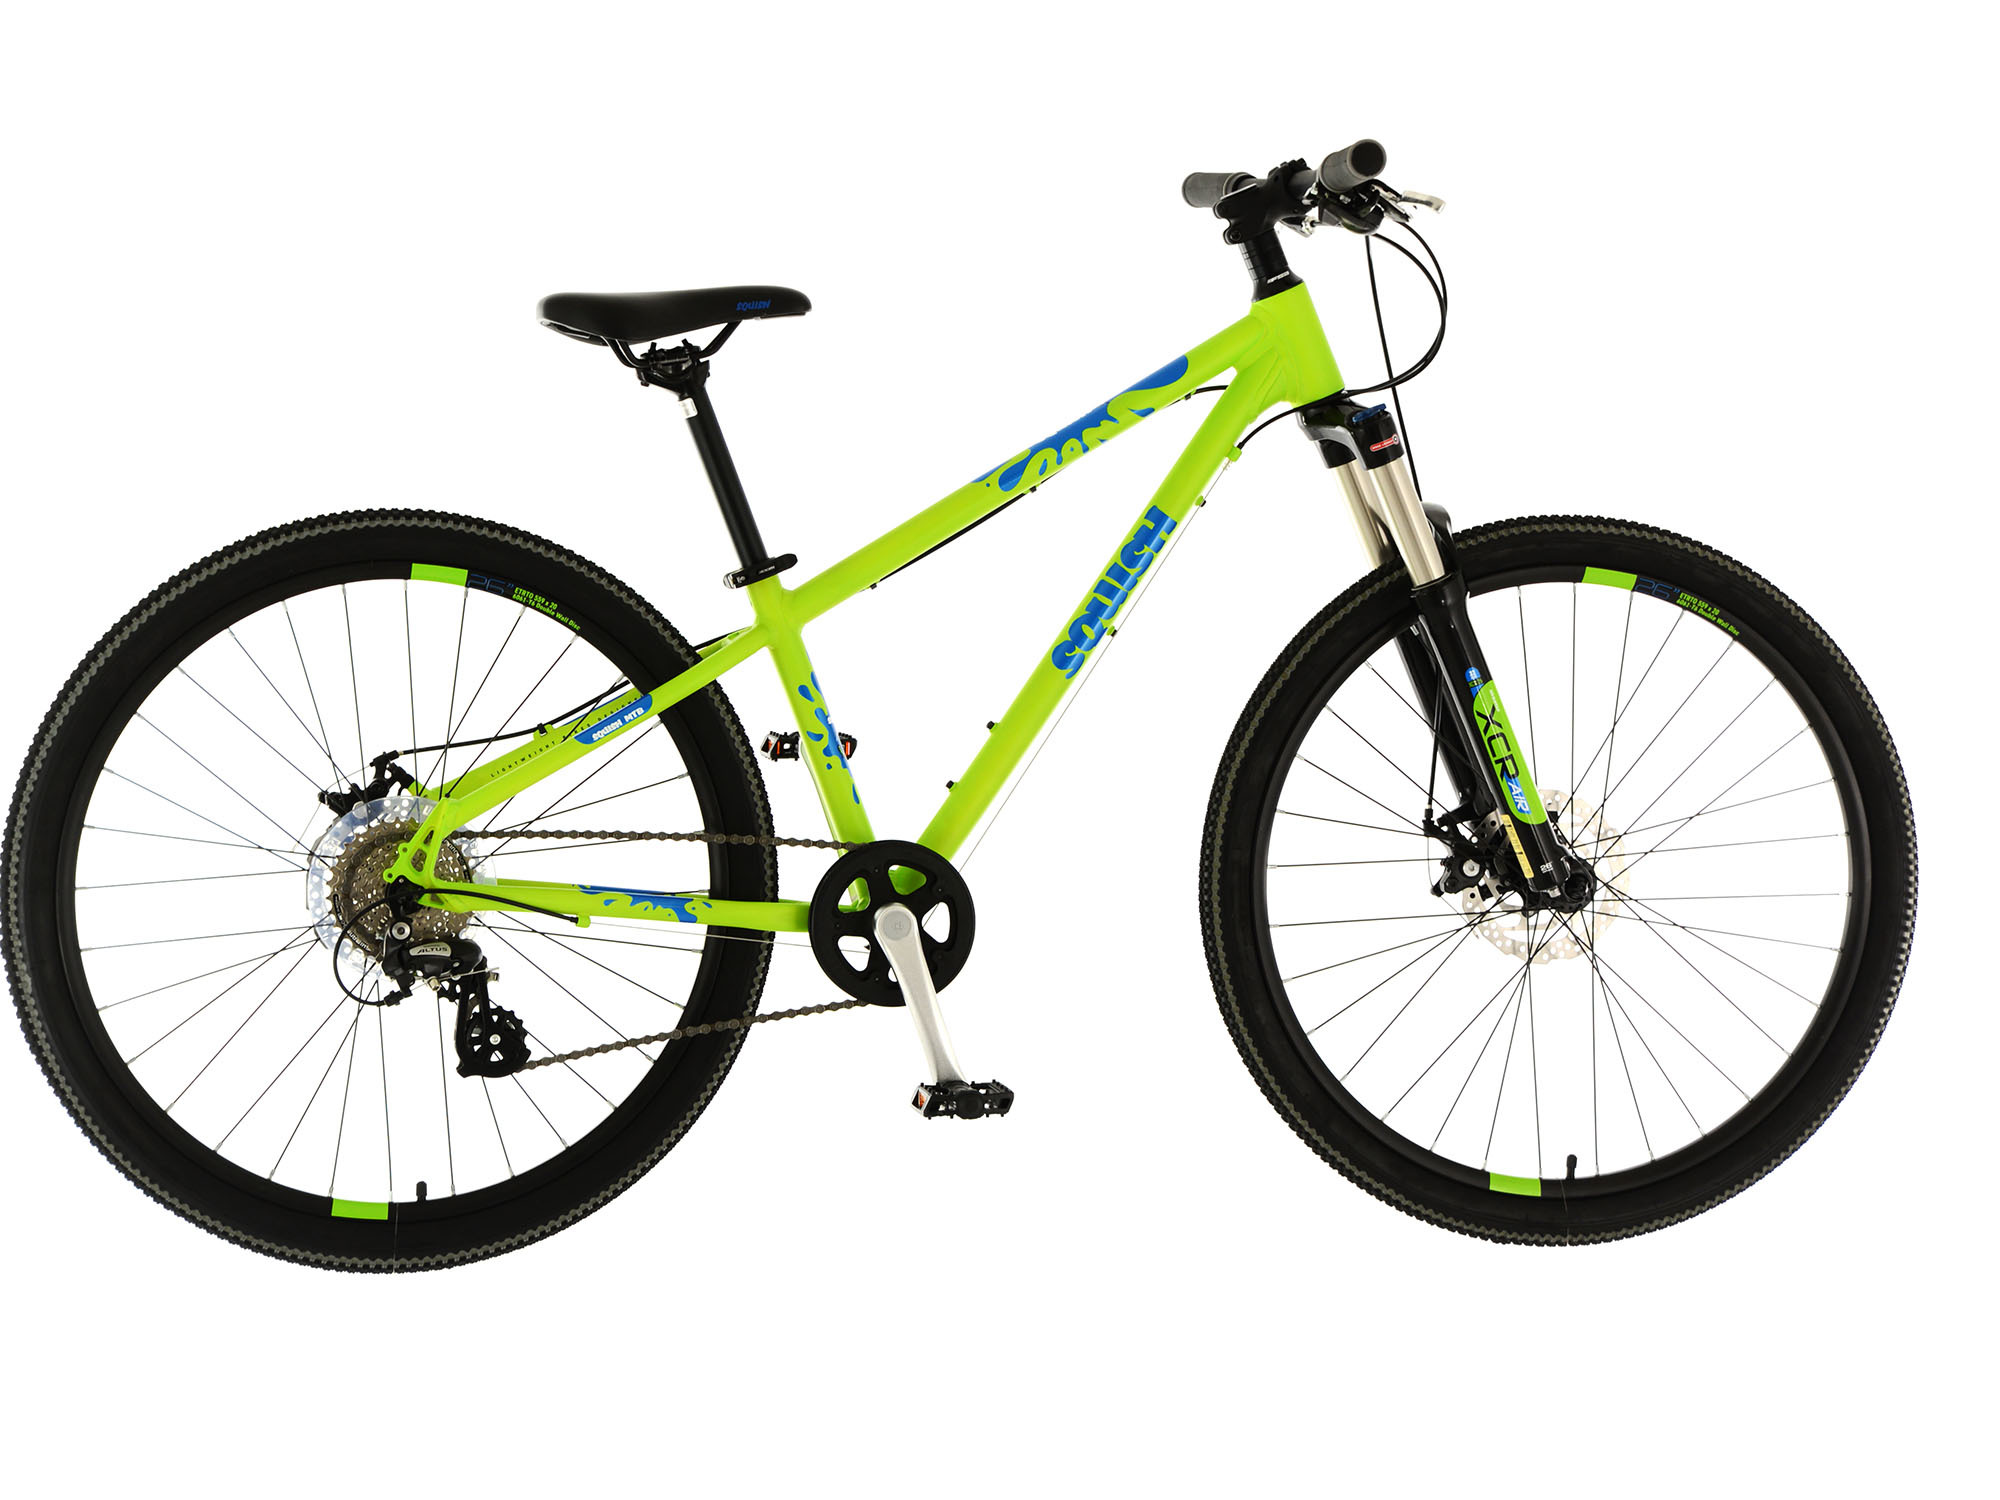 "Squish MTB 26"" Light Weight Bike - Front Suspension 00034"